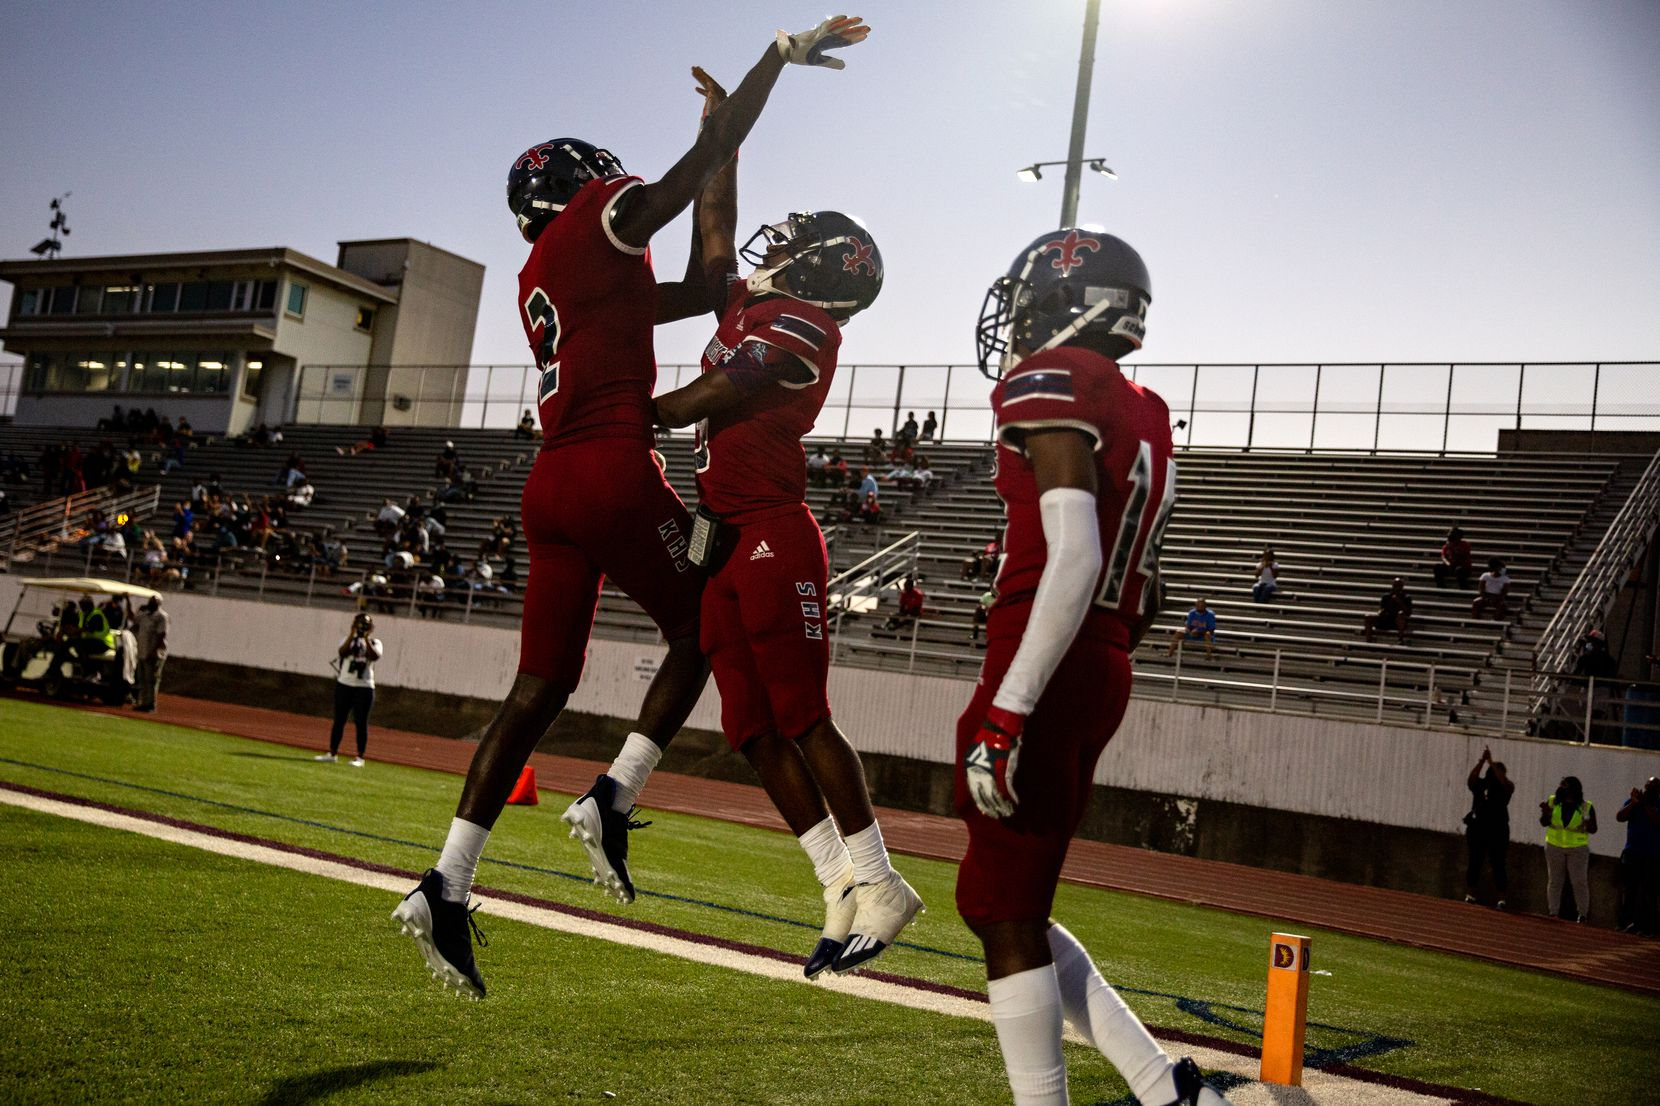 Justin F. Kimball High School players celebrate after a touchdown during their season-opening game against Garland High School at Sprague Stadium in Dallas, TX on August 27, 2021.   (Shelby Tauber/Special Contributor)